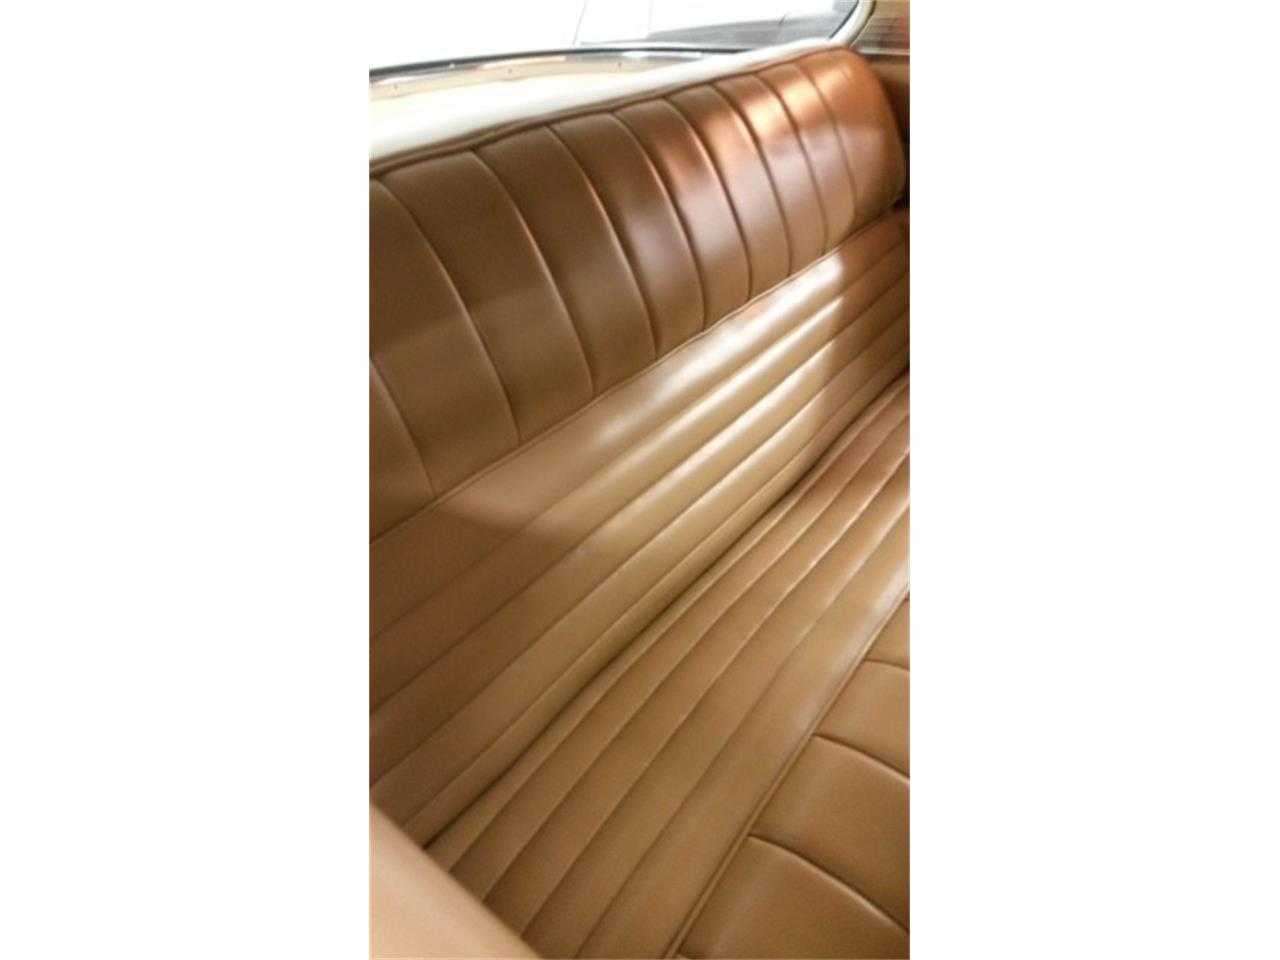 Large Picture of 1956 Chrysler 300B - $89,900.00 Offered by a Private Seller - L00Q